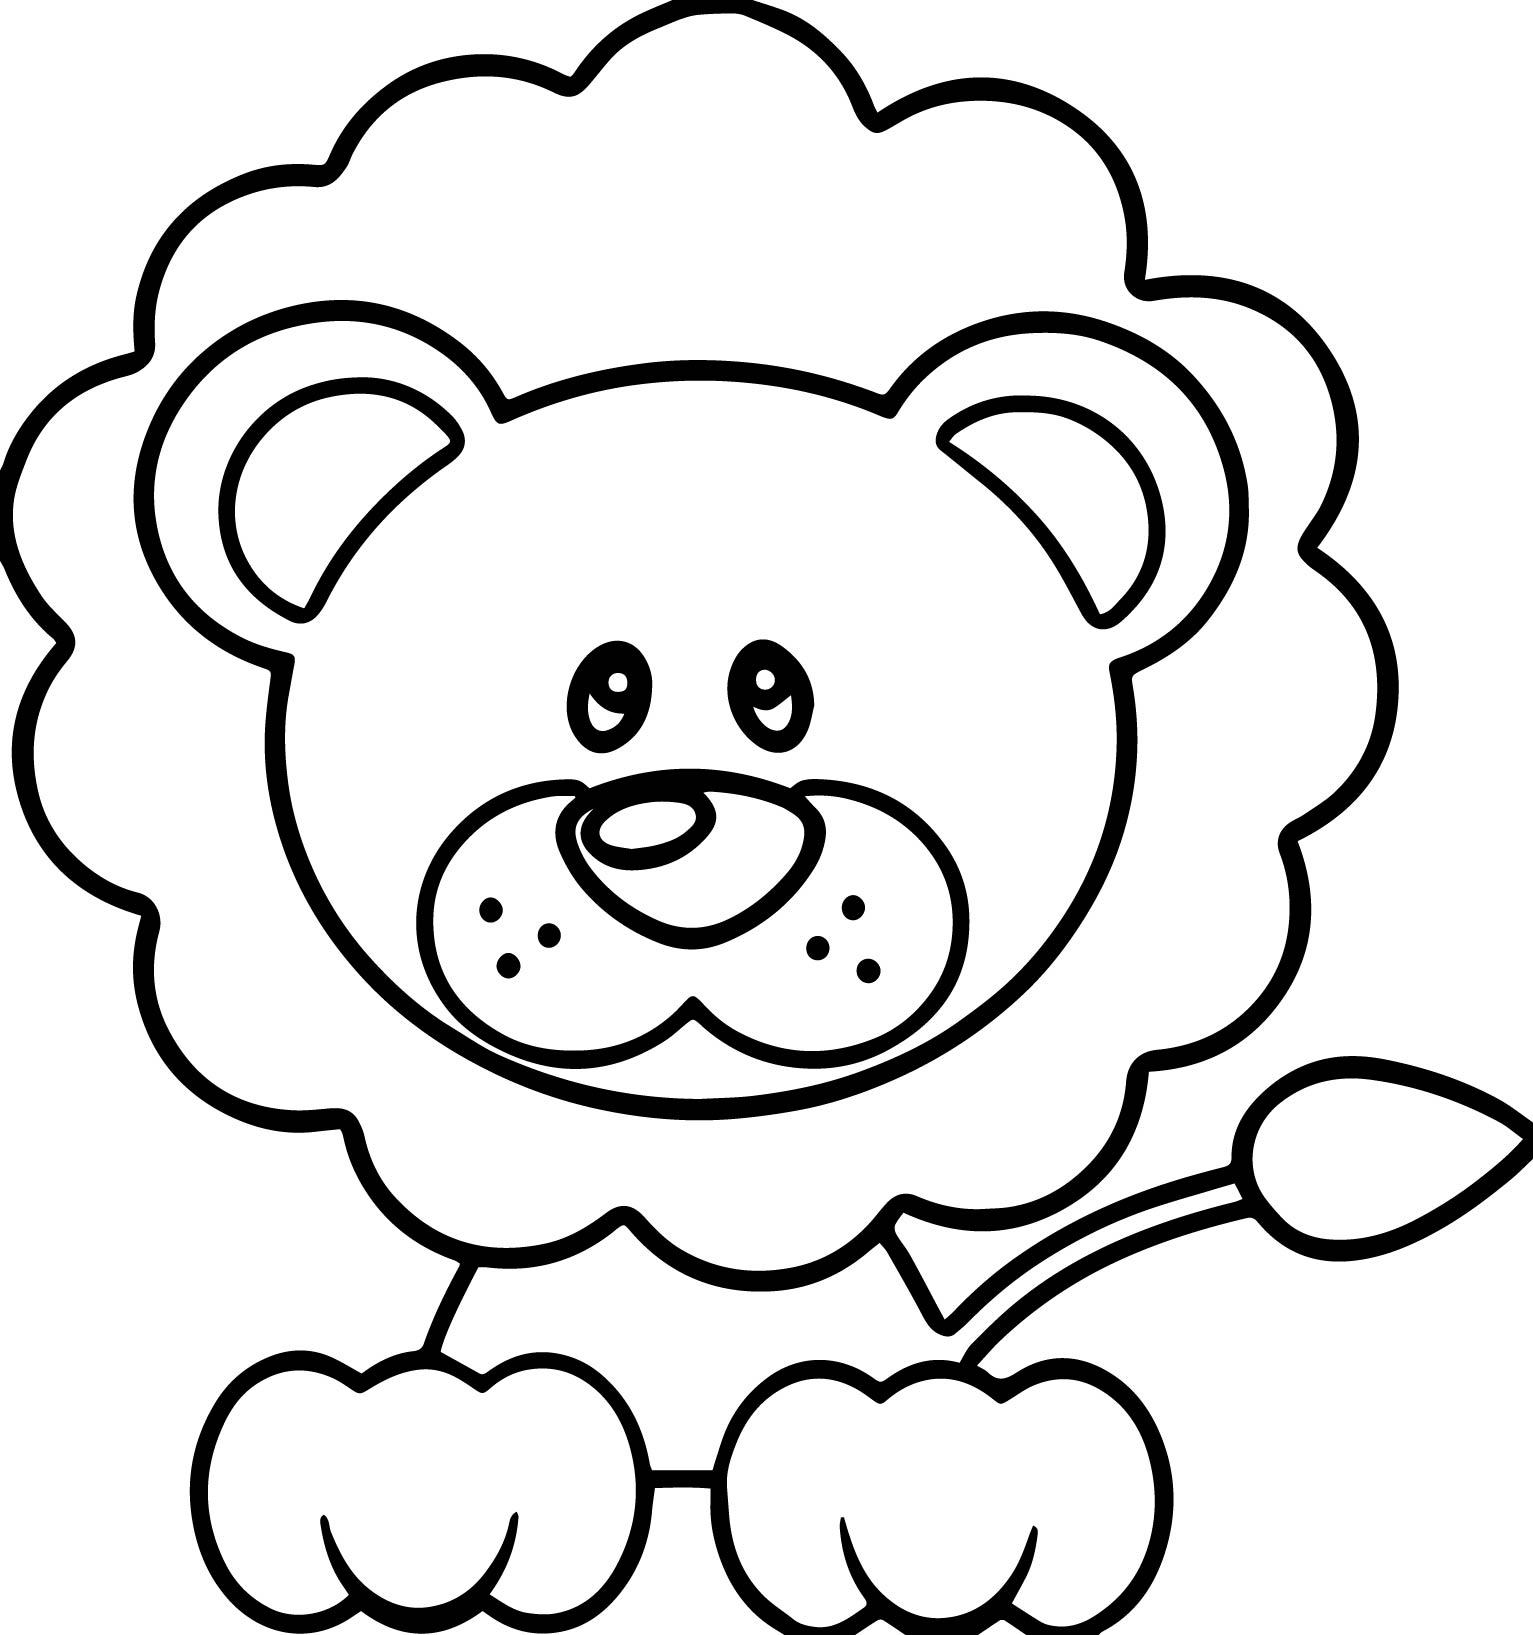 lion growling coloring pages - photo#12